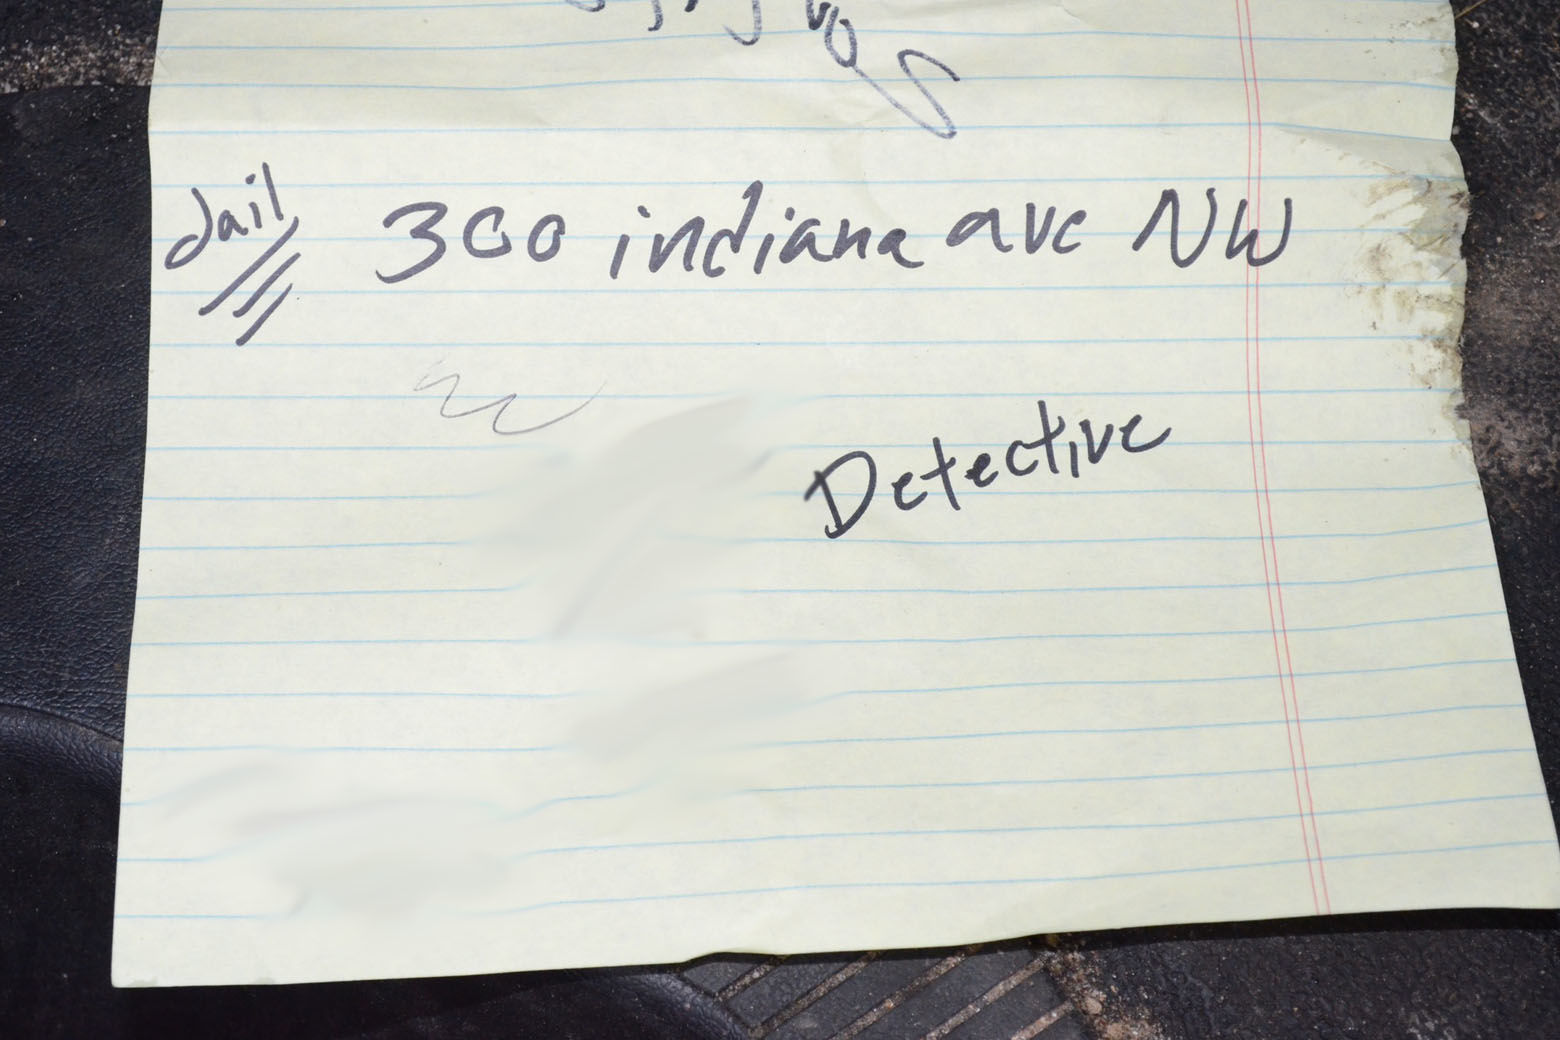 This piece of paper was found by police the night Daron Wint was arrested. His younger brother, Darrell Wint, testified he was on the phone with police to turn Daron in when their vehicles were swarmed by U.S. Marshals. The scrap of paper contains the address for the D.C police headquartersl. A phone number scribbled next to the word detective (blurred out in this photograph) was the phone number for D.C. Det. Jeff Owens, the lead detective investigating the killings of the Savopoulos family and Vera Figueroa.